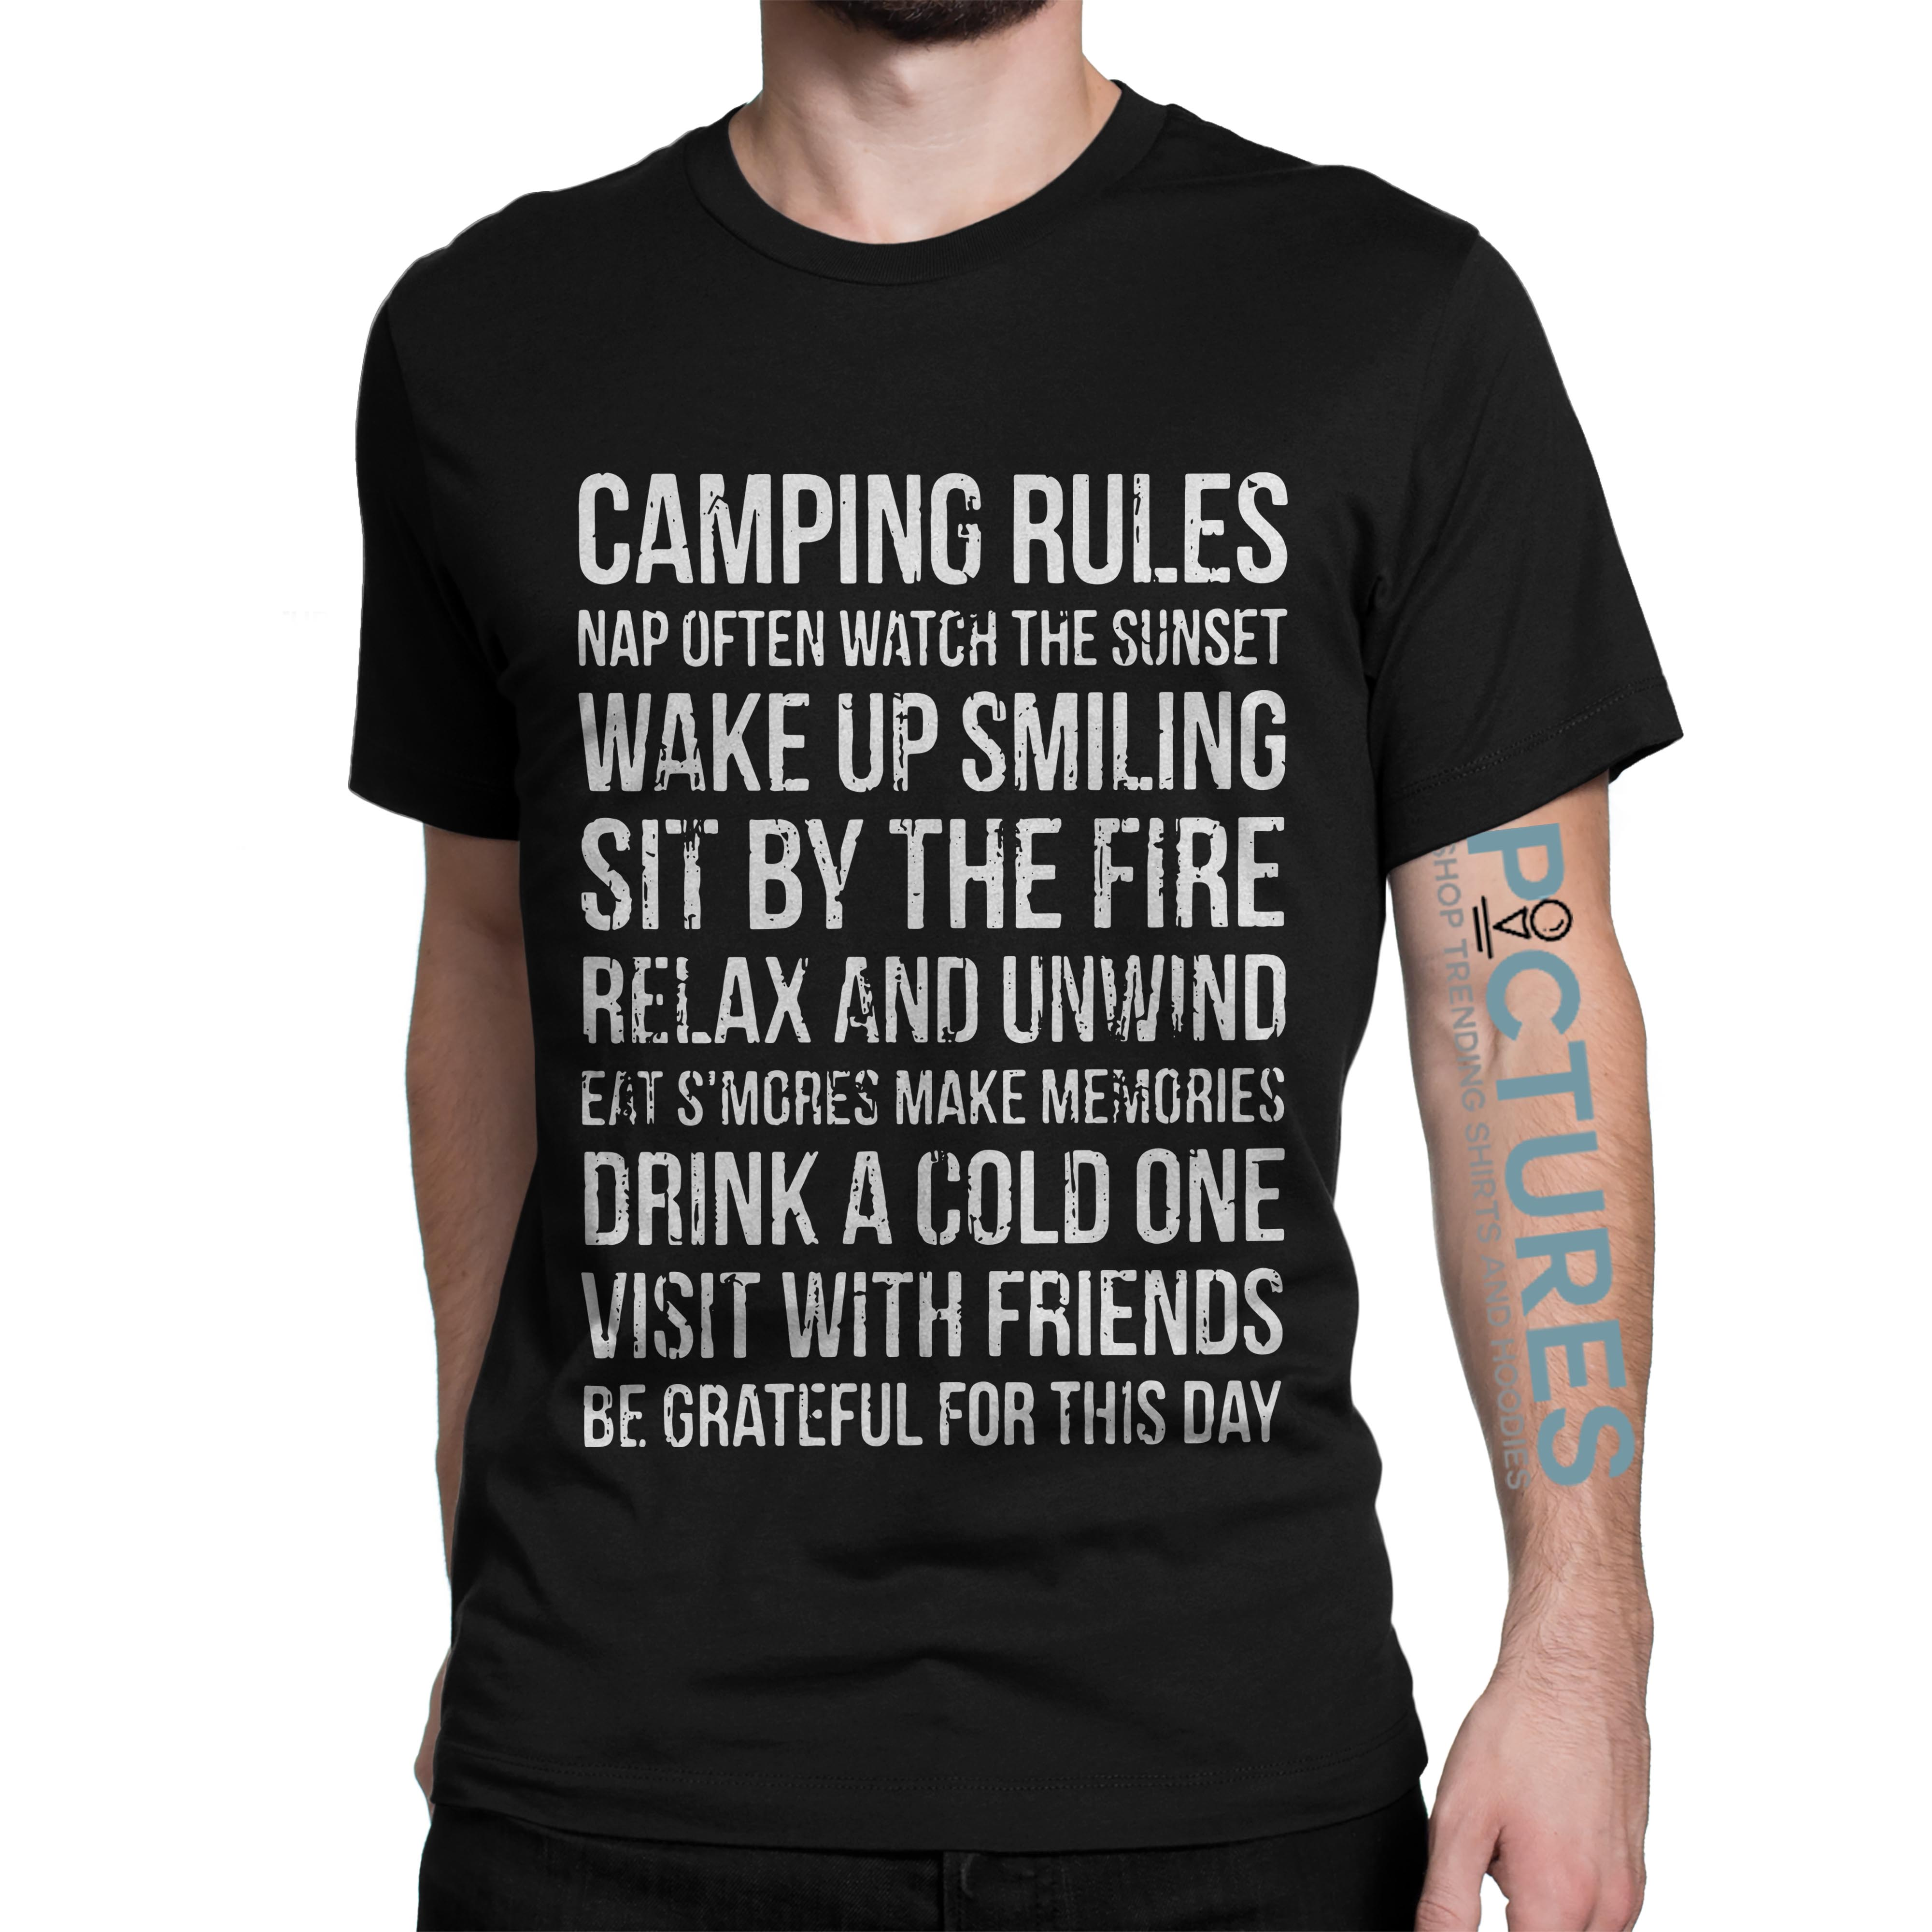 Official Camping rules shirt